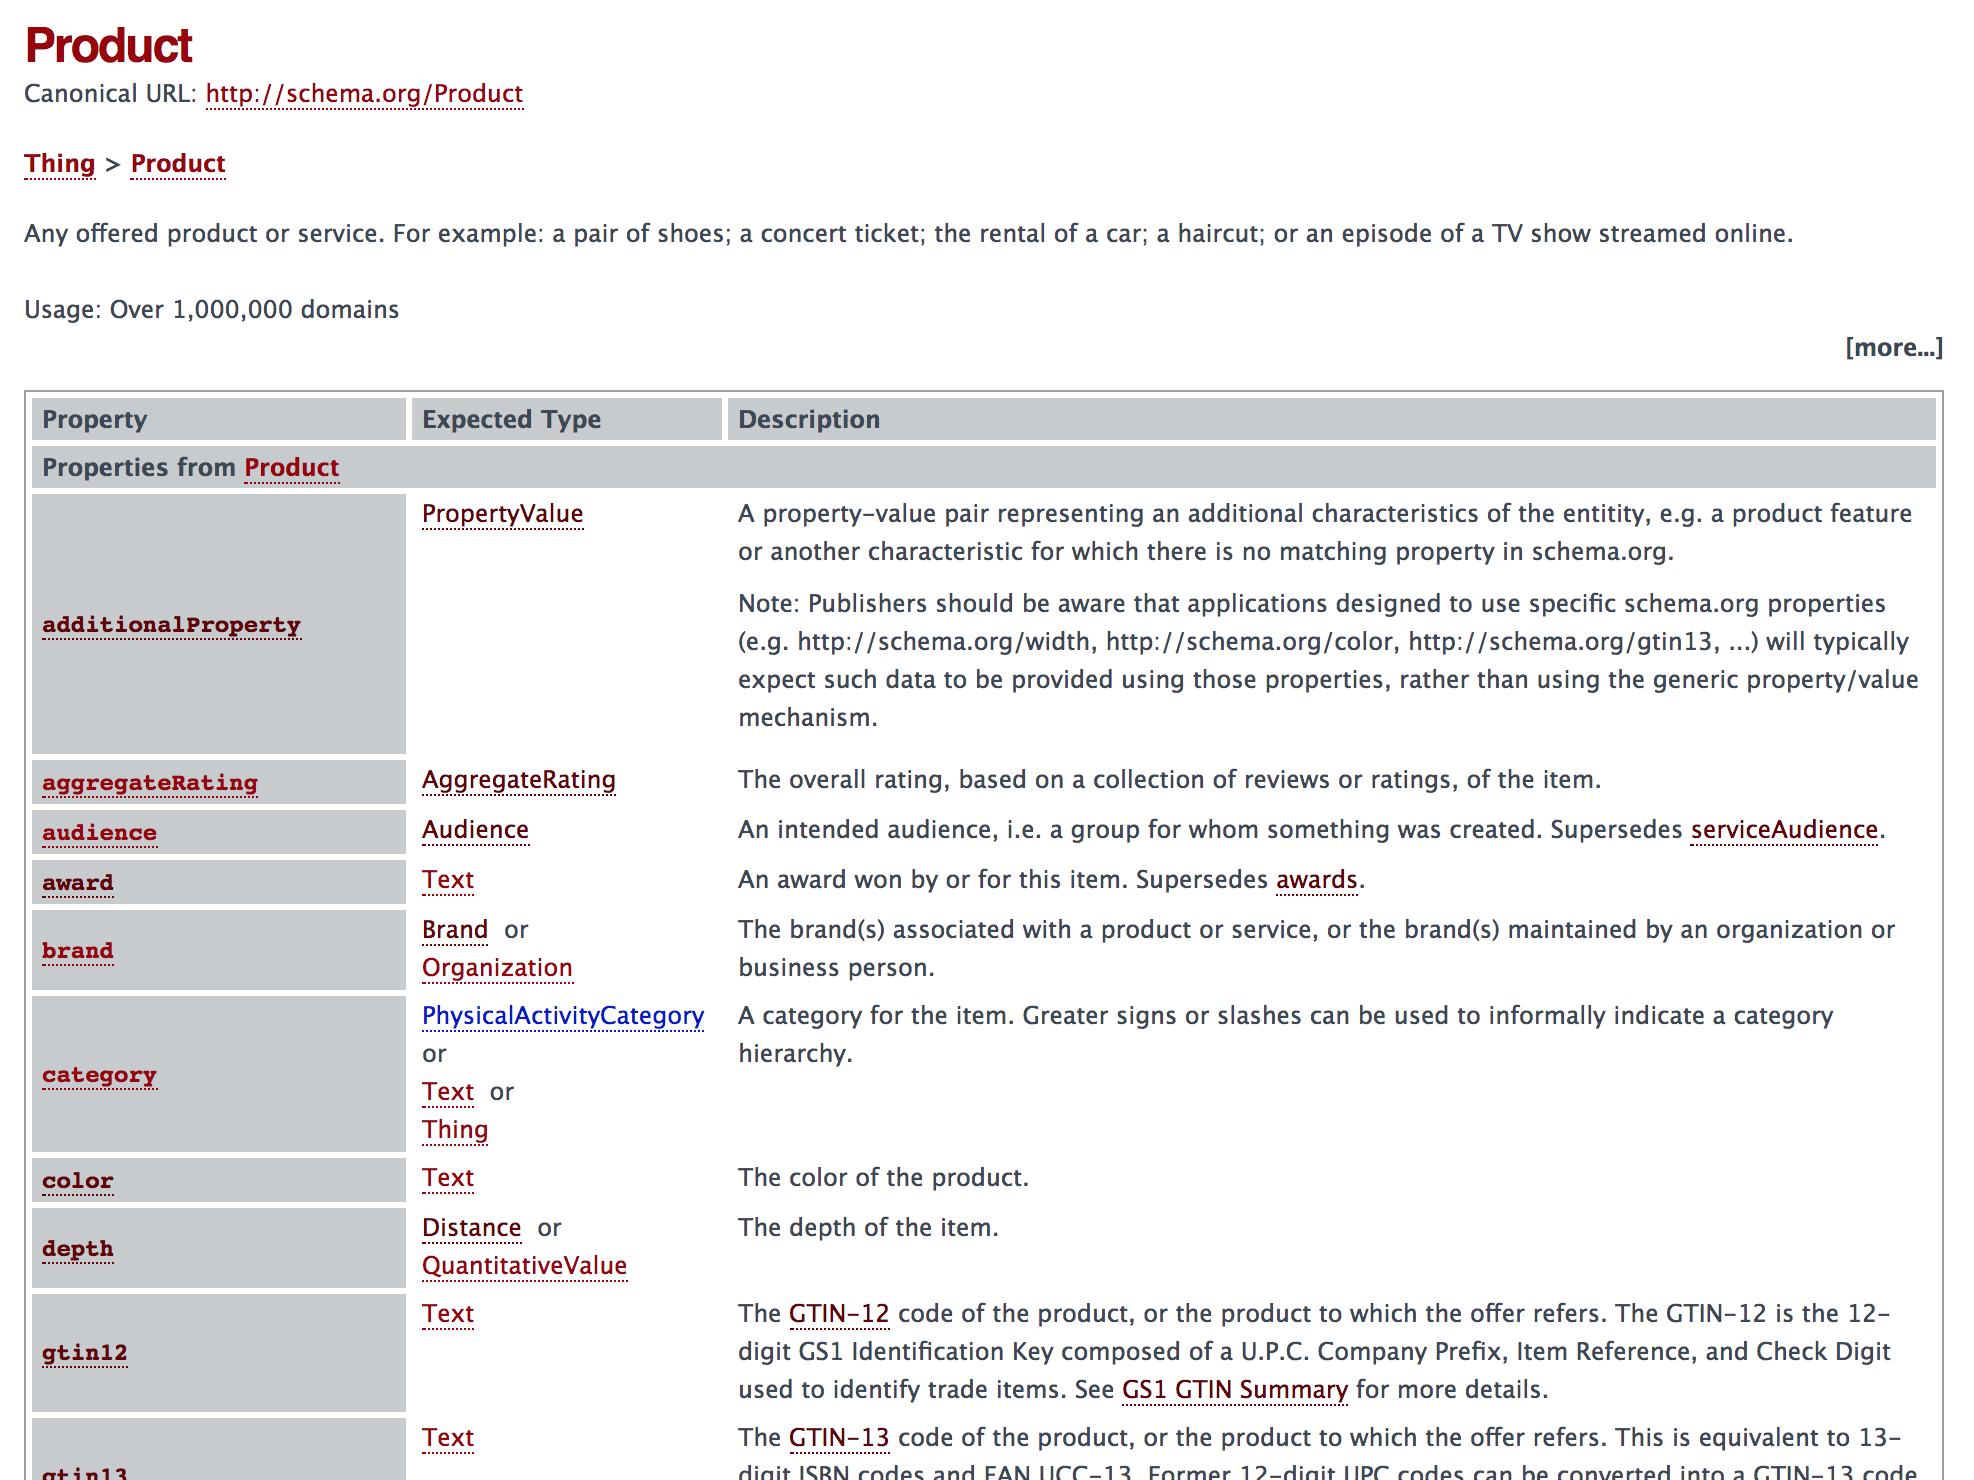 Portion of Schema.org Product class documentation page